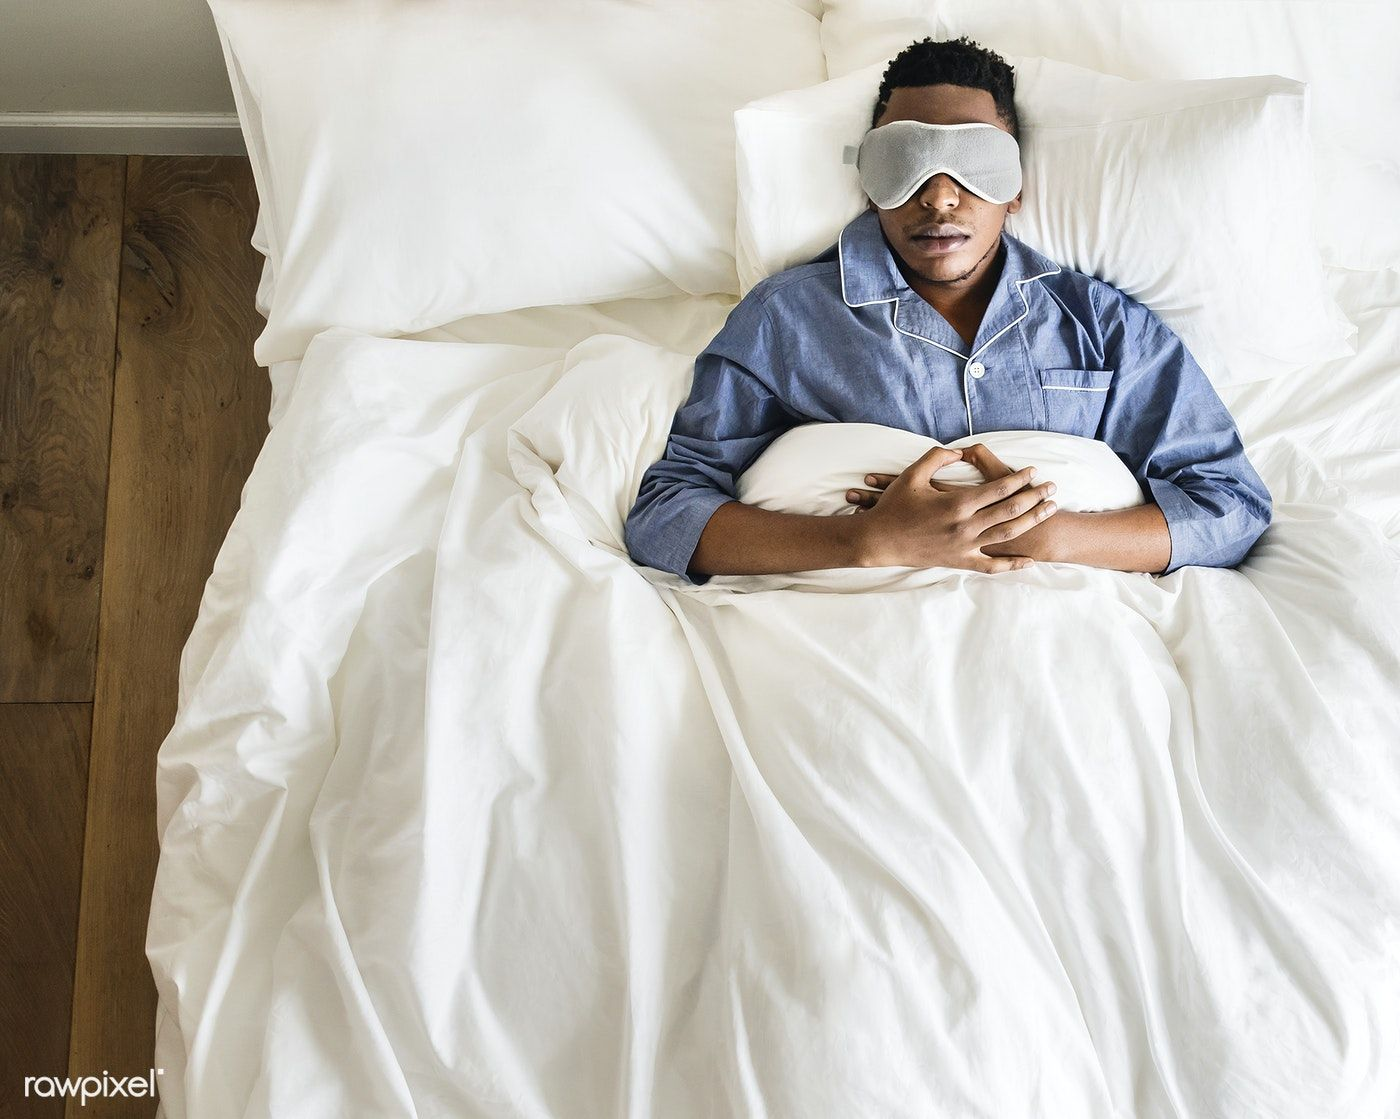 Poor sleep poses risk to your health and productivity